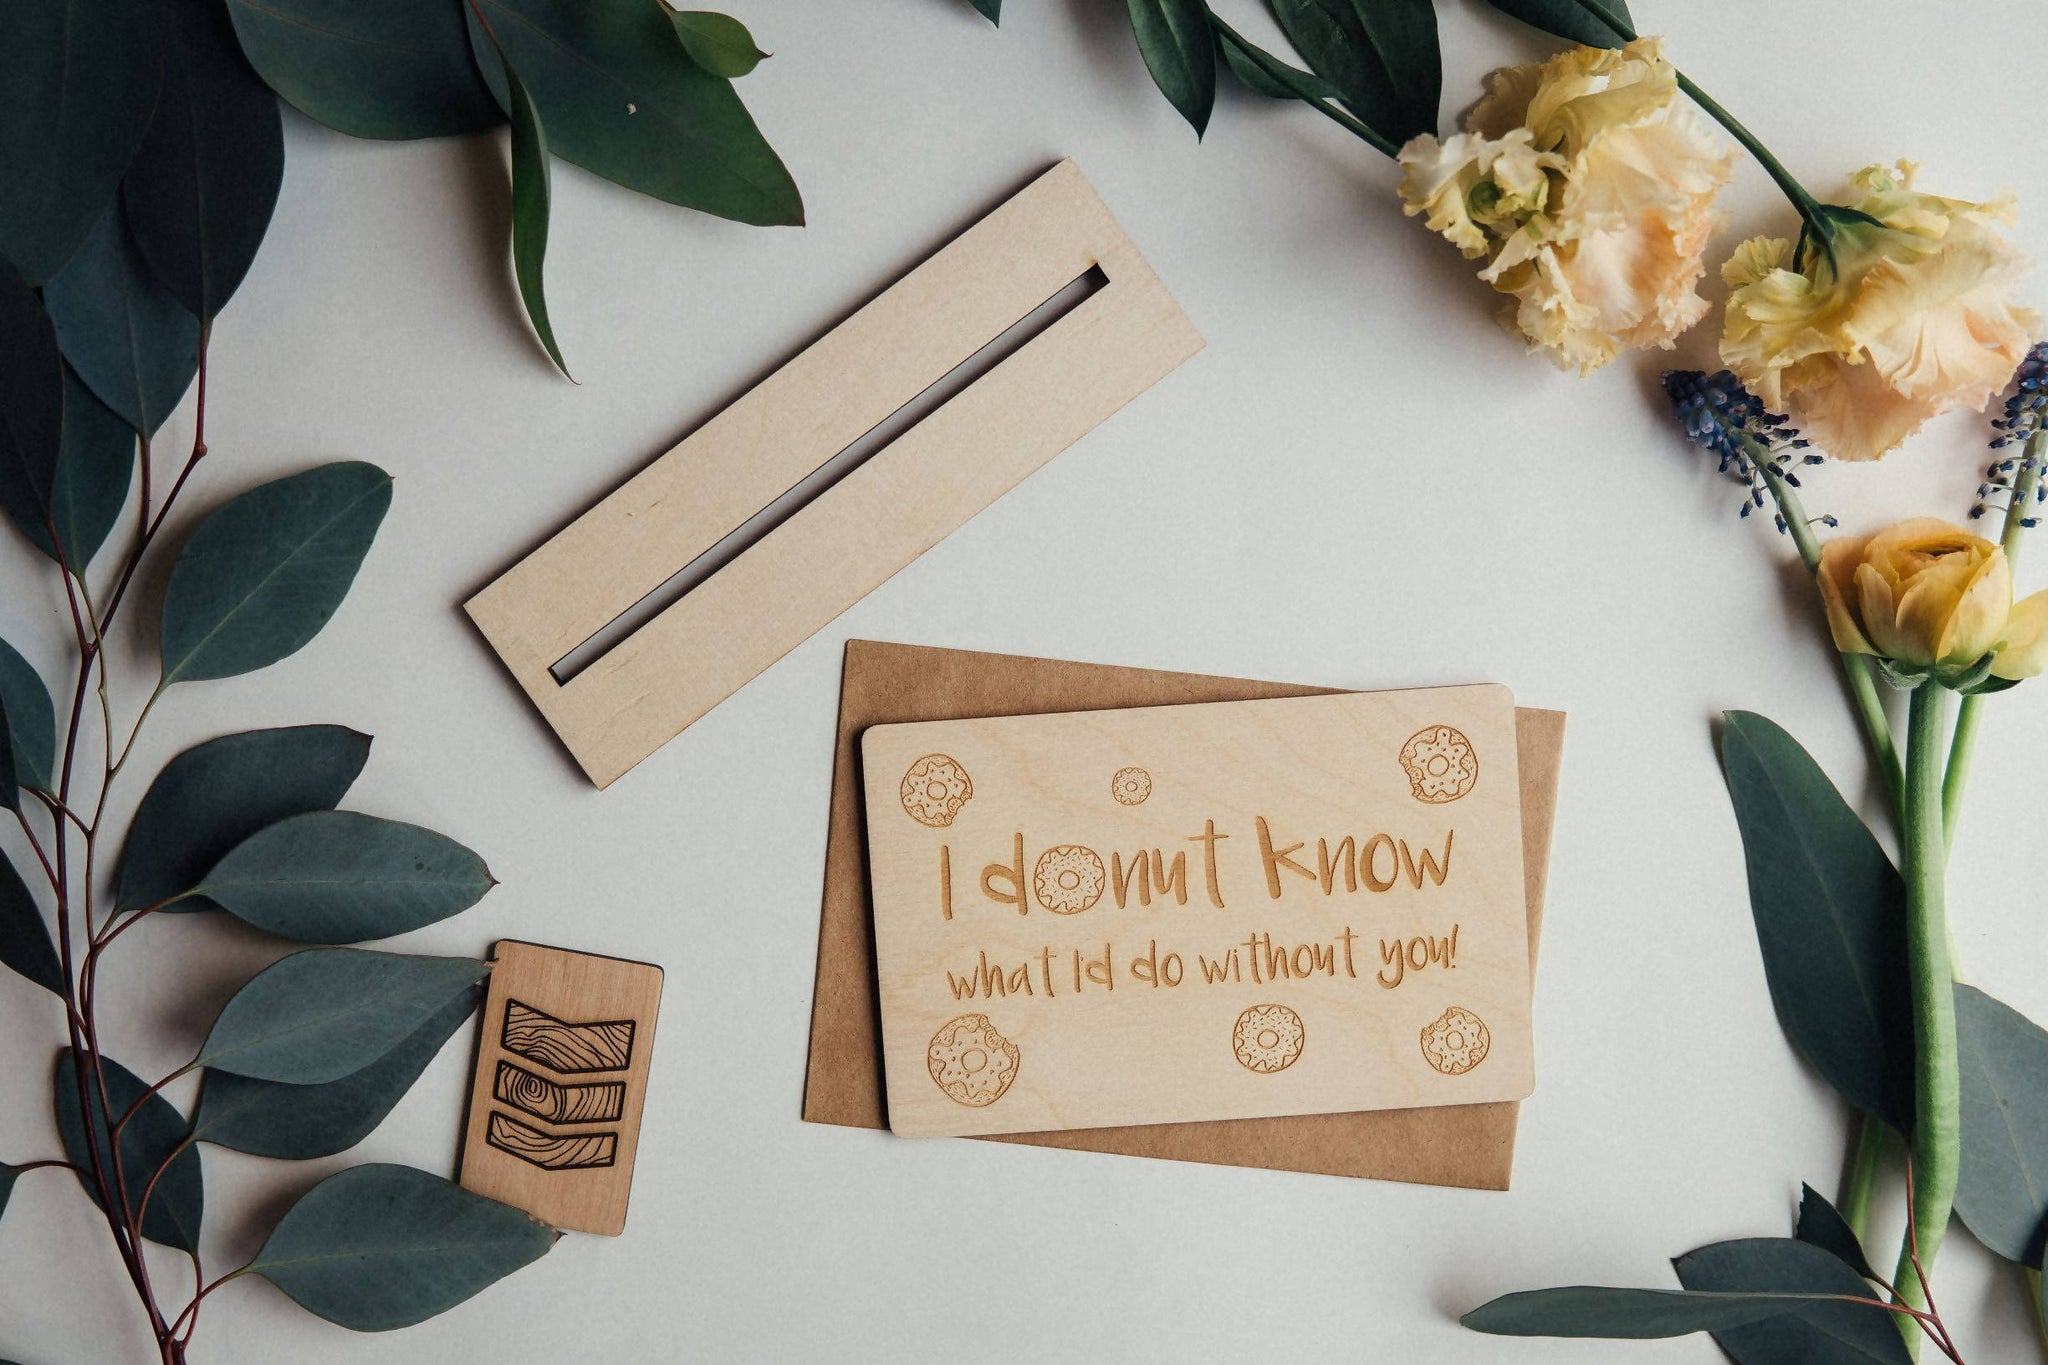 I donut know what I'd do without you Wooden Greeting Card